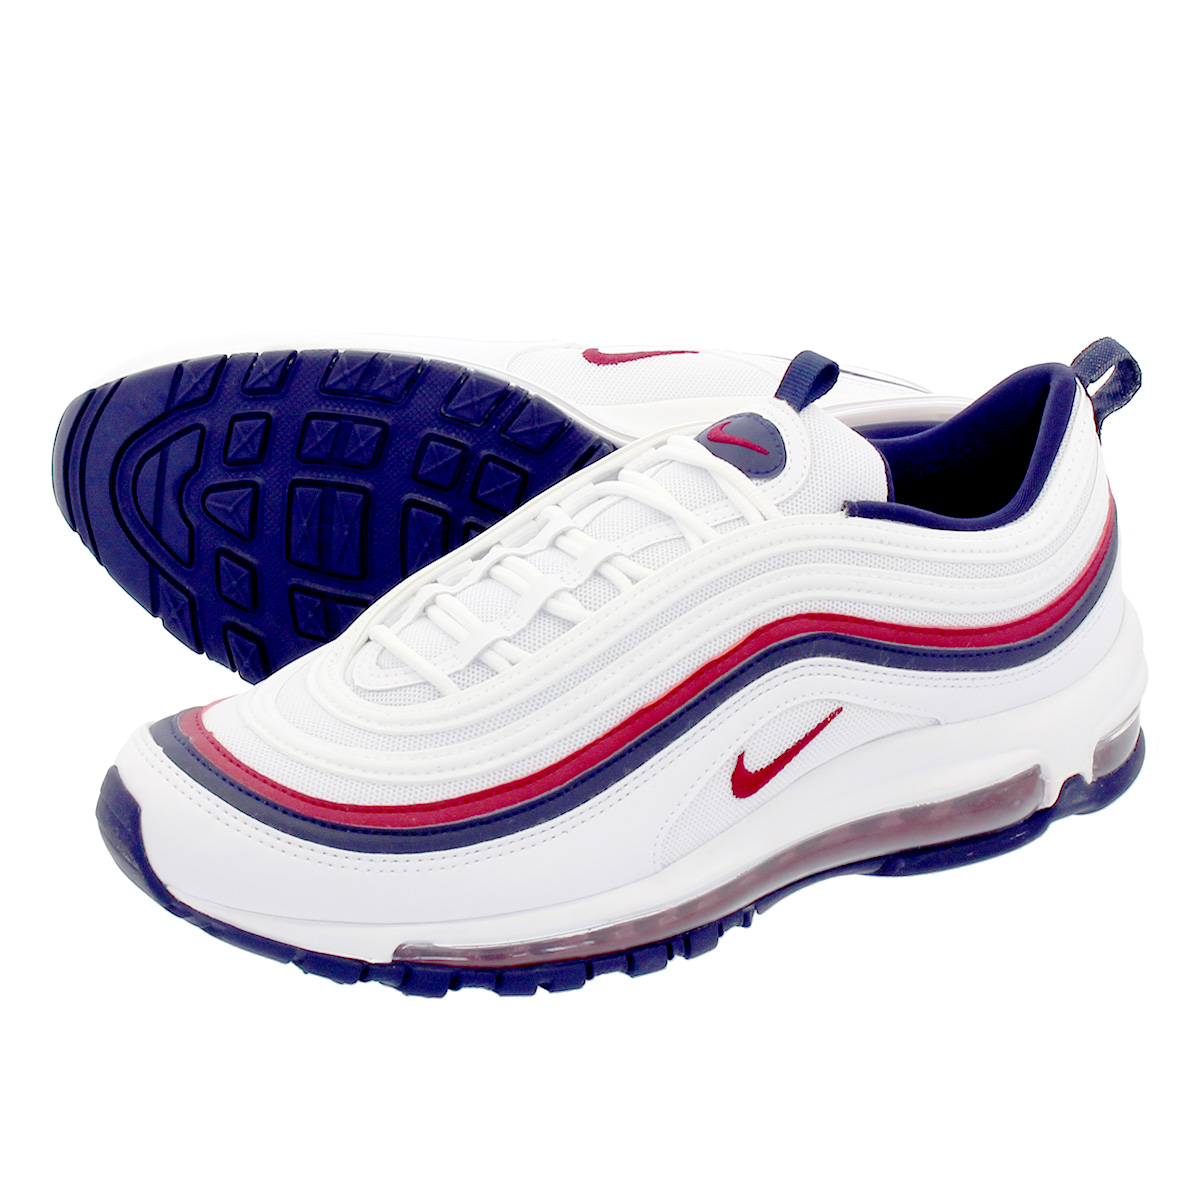 Nike Leather Air Max 97 Lx W in Pink Lyst